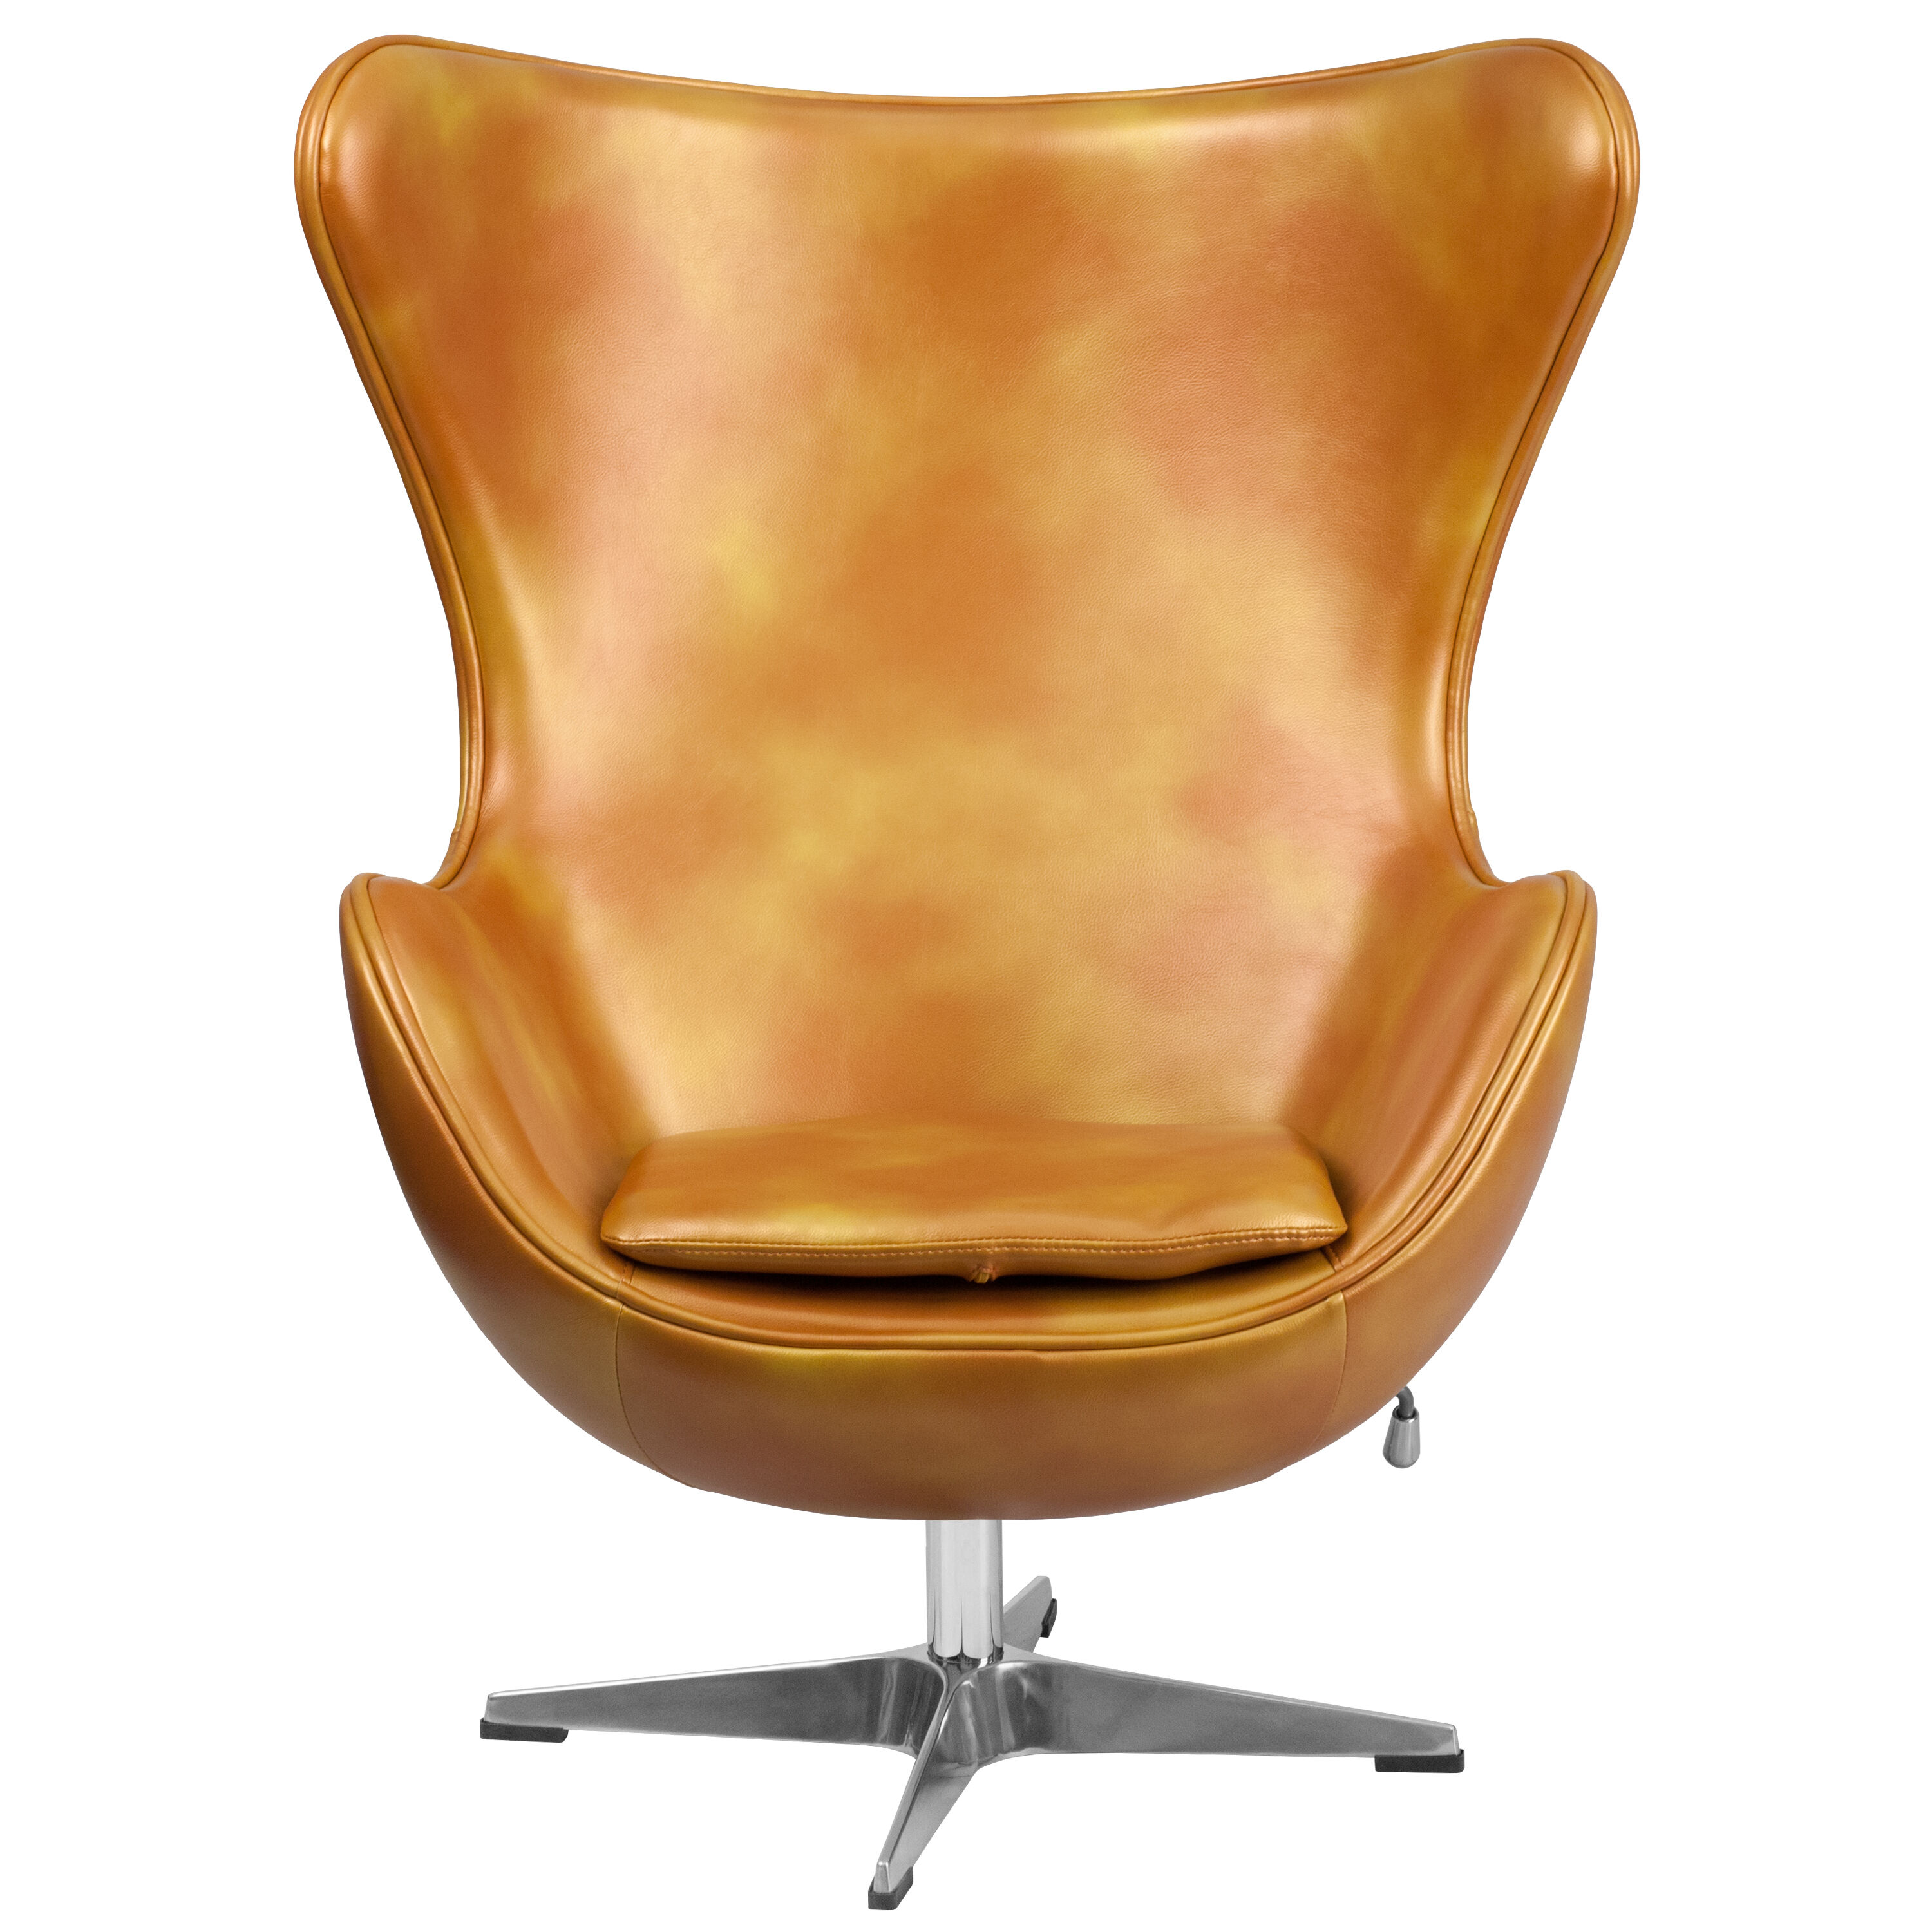 Egg Chairs For Sale Cheap Gold Leather Egg Chair Zb 24 Gg Restaurantfurniture4less